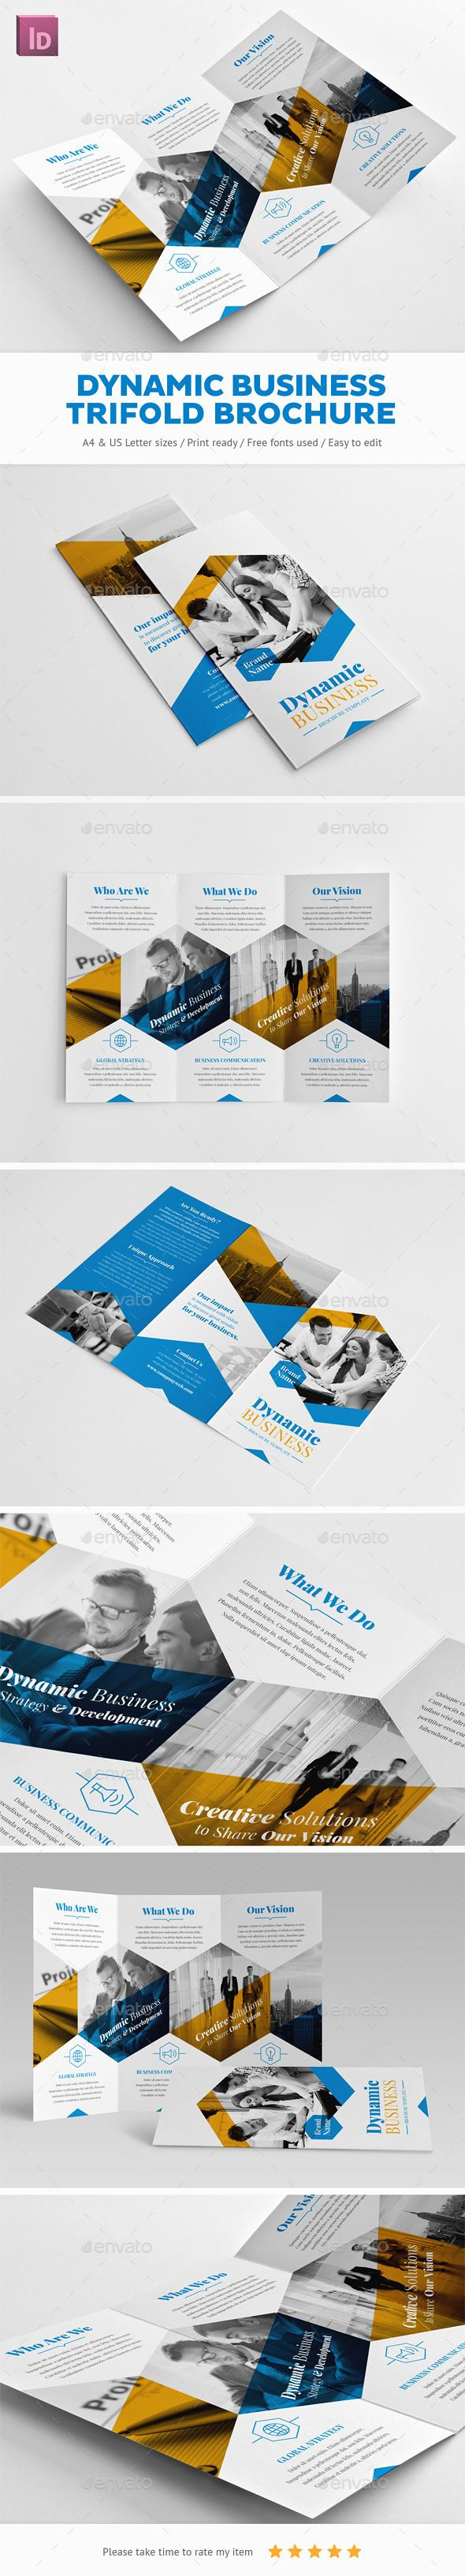 Dynamic Business Trifold Brochure | Brochure template, Brochures ...